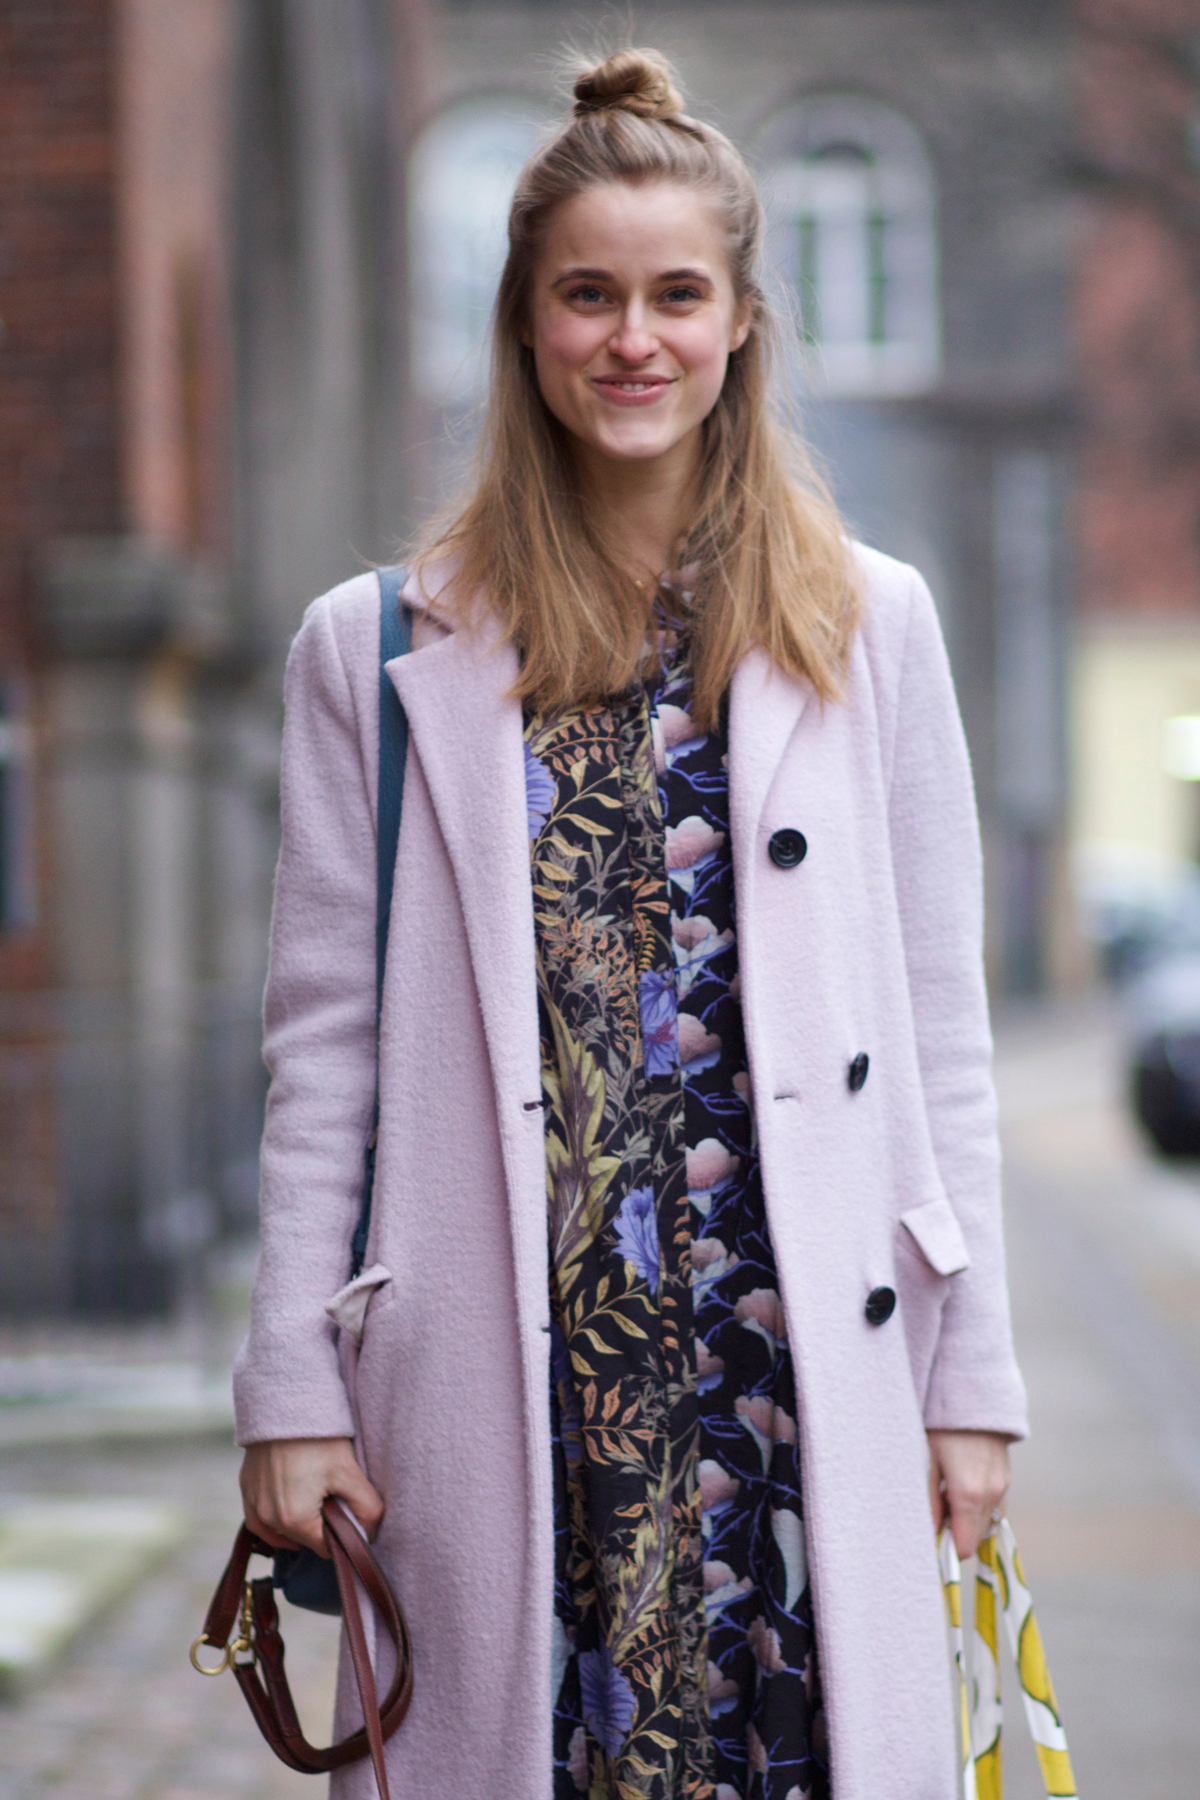 rockpaperdresses, cathrine nissen, Frida, Won hundred pink coat, nike huarache